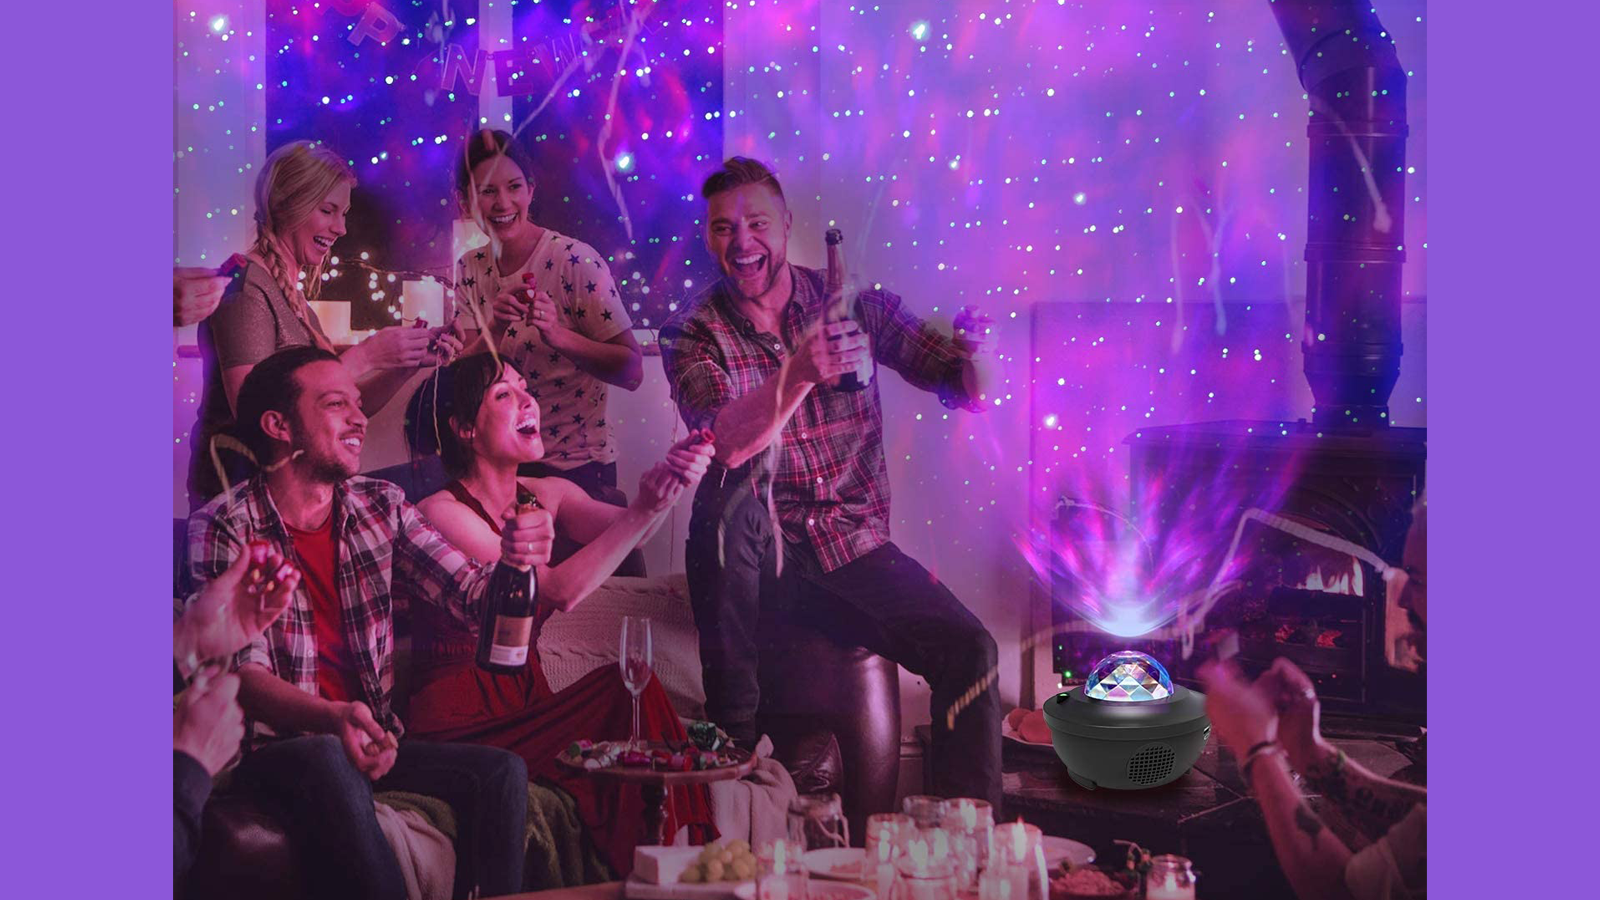 With a Galaxy Projector, You Can Create a Relaxing and Fun Scene